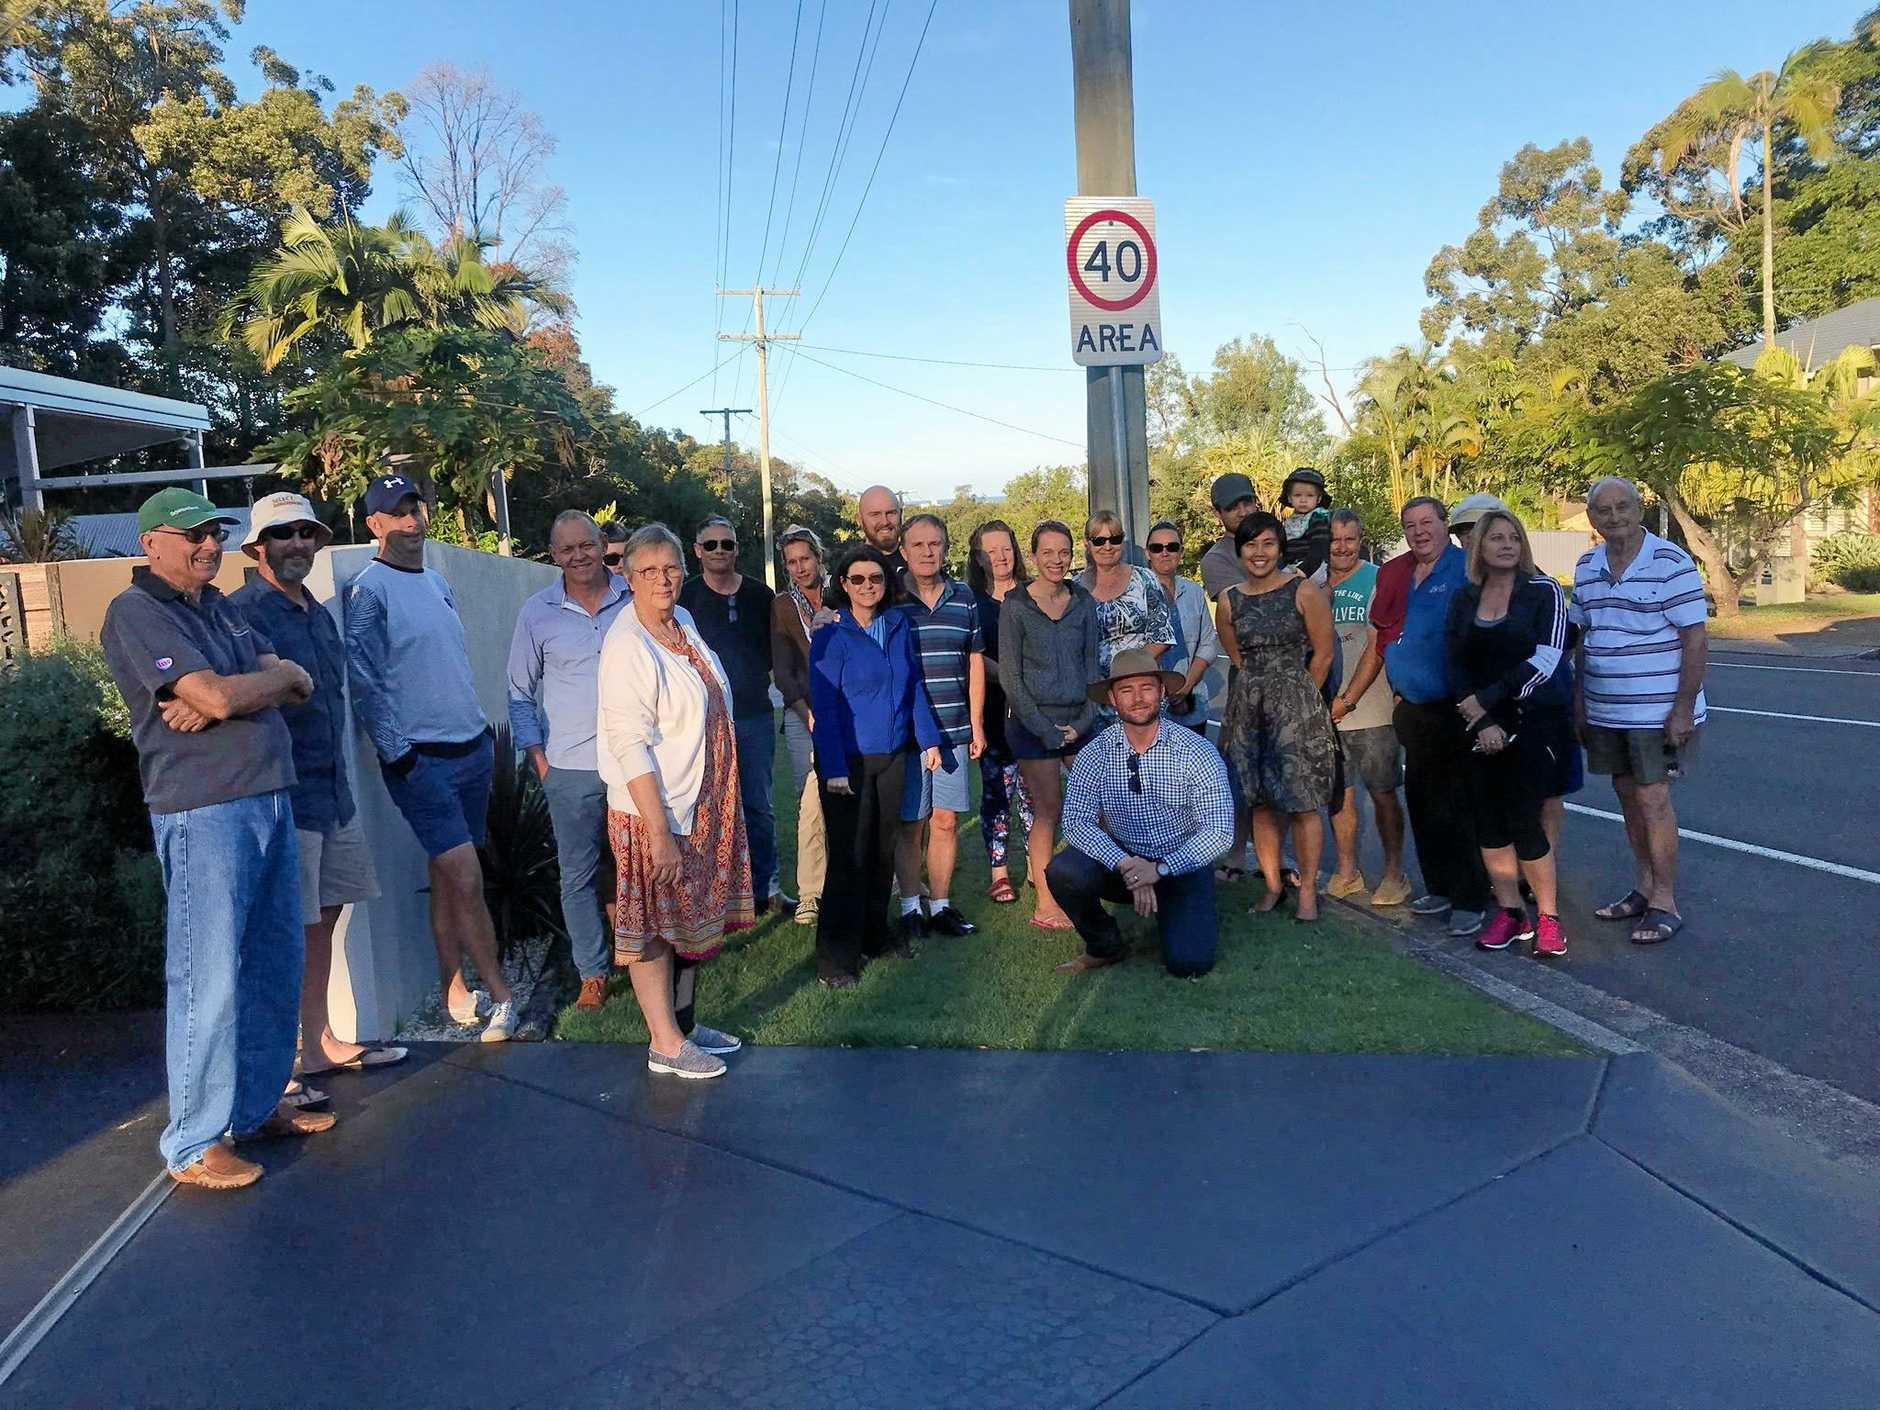 Karawatha St residents met with divisional councillor Christian Dickson to air frustrations over ongoing speeding in their residential street.